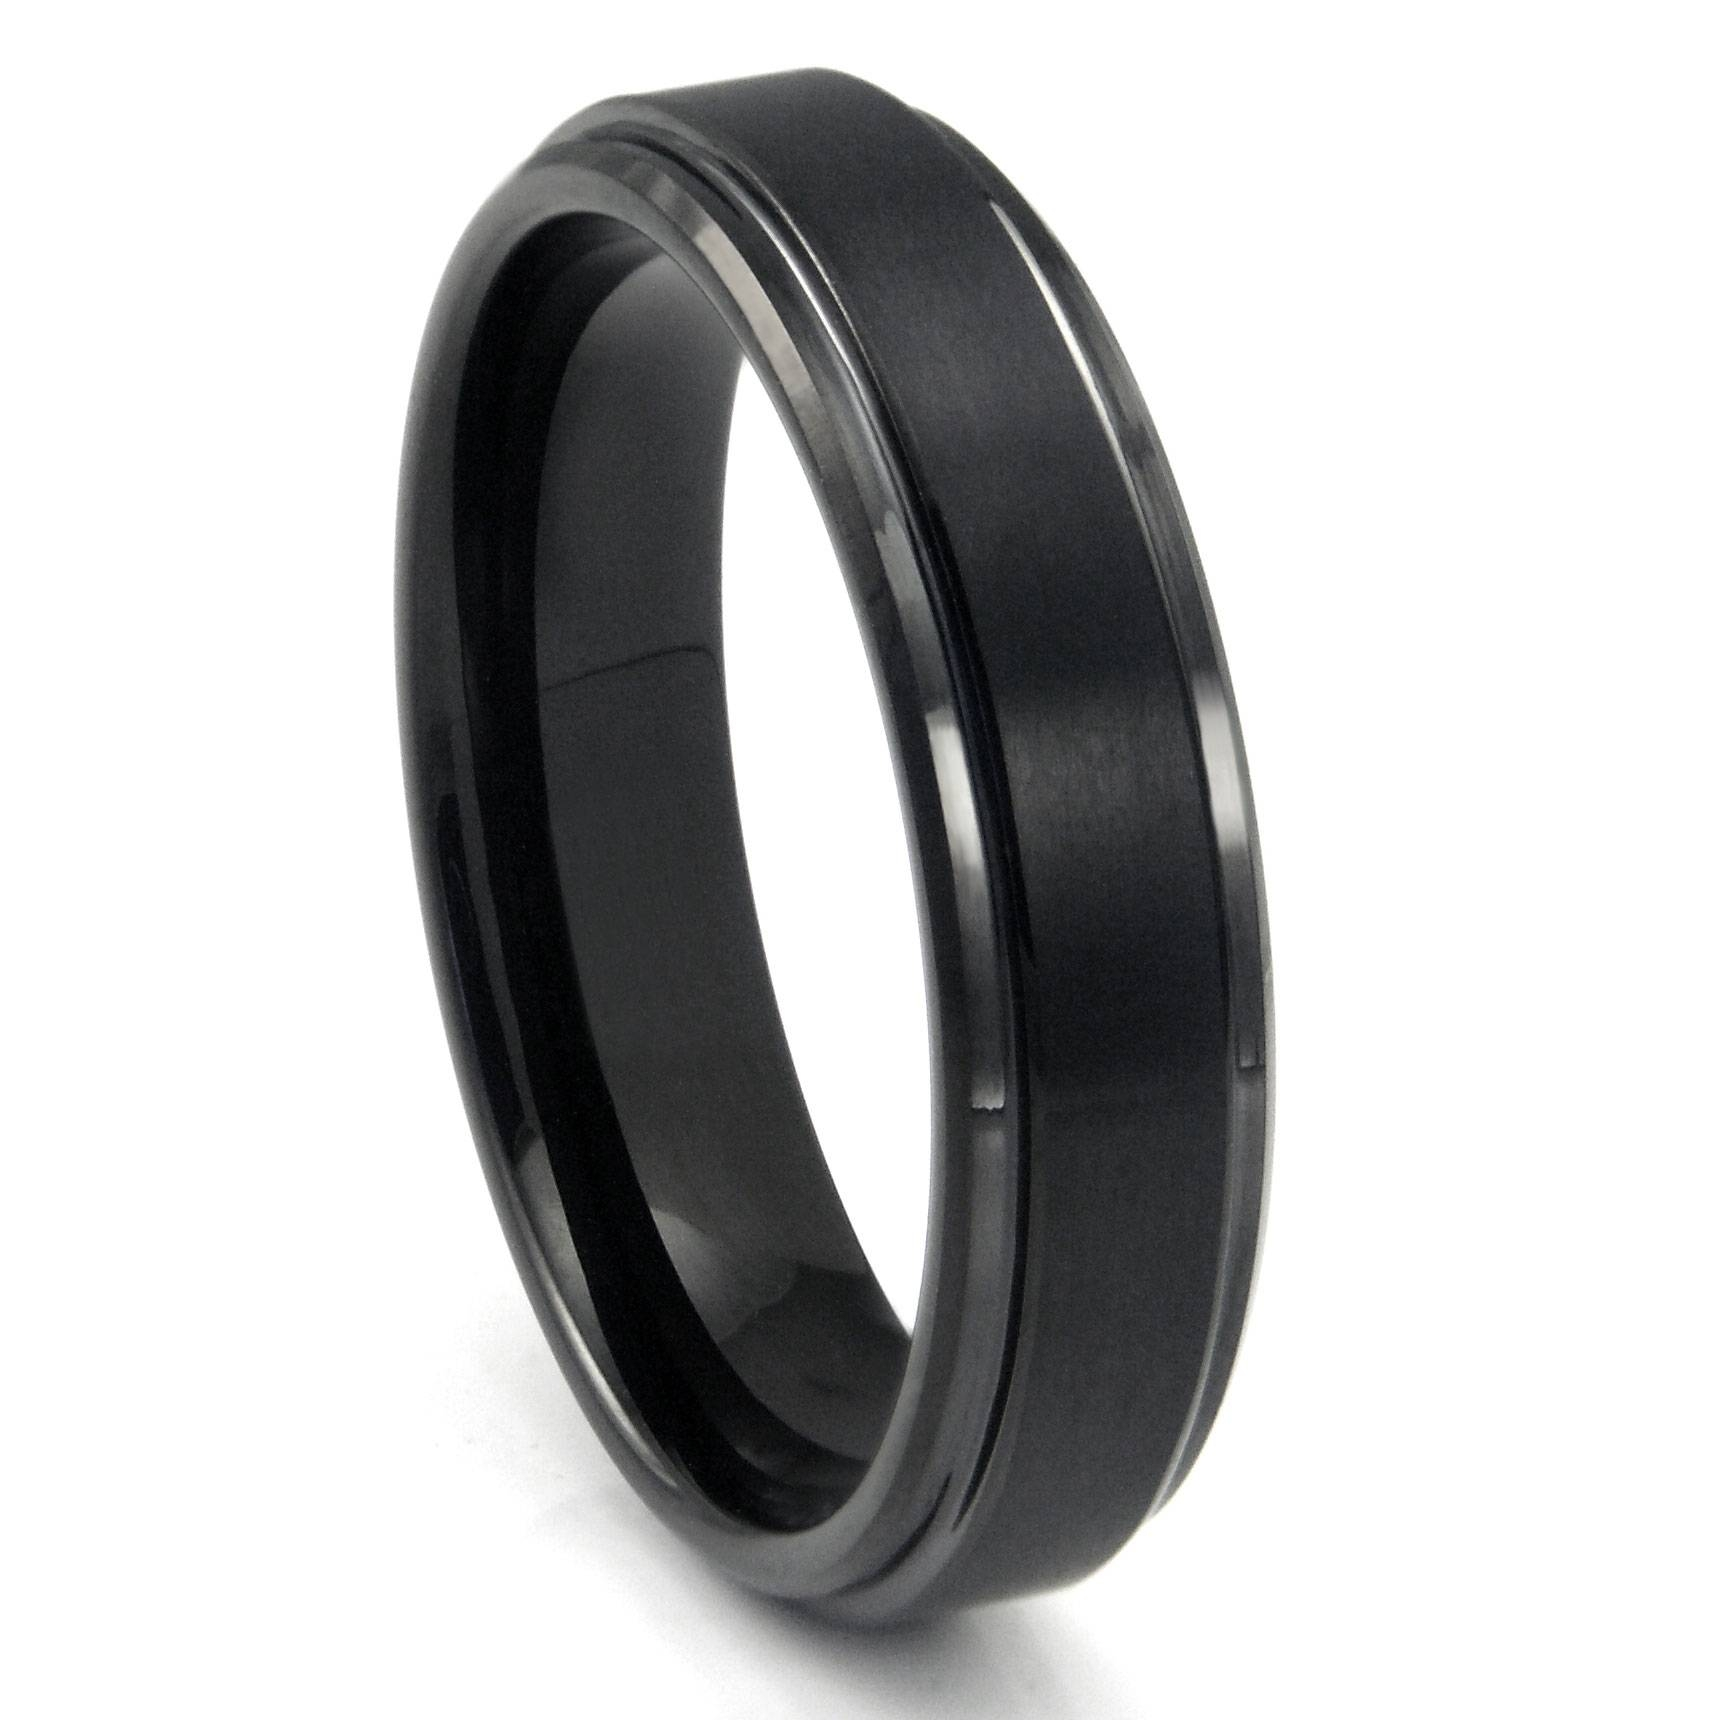 Black Tungsten Carbide Wedding Band Ring W/ Raised Center With 8Mm Tungsten Carbide Wedding Bands (View 5 of 15)